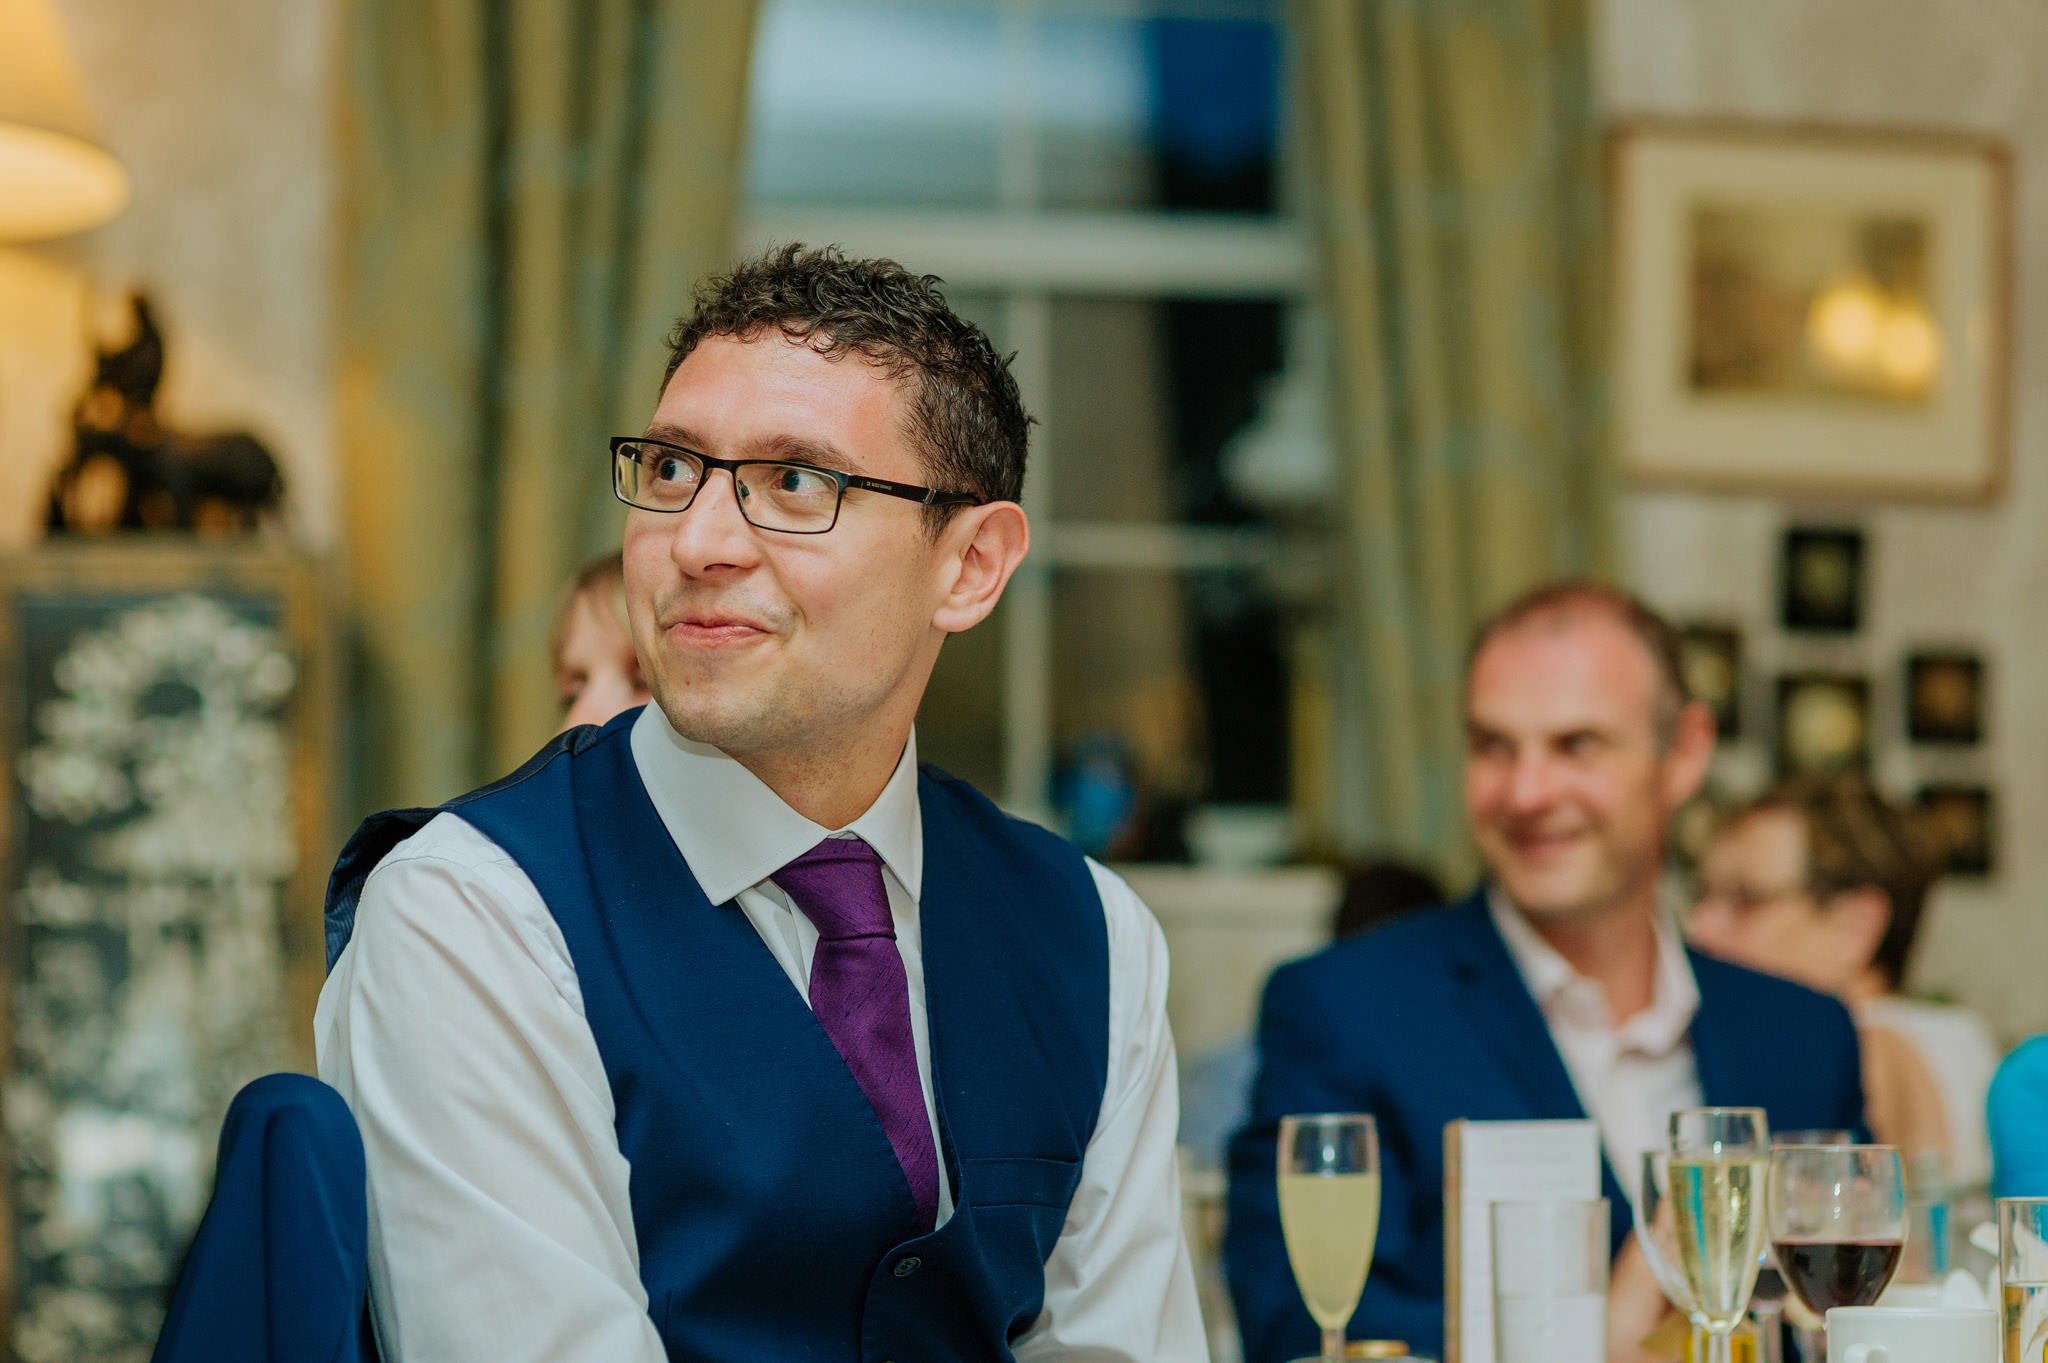 Wedding photography at Homme House in Herefordshire, West Midlands 80